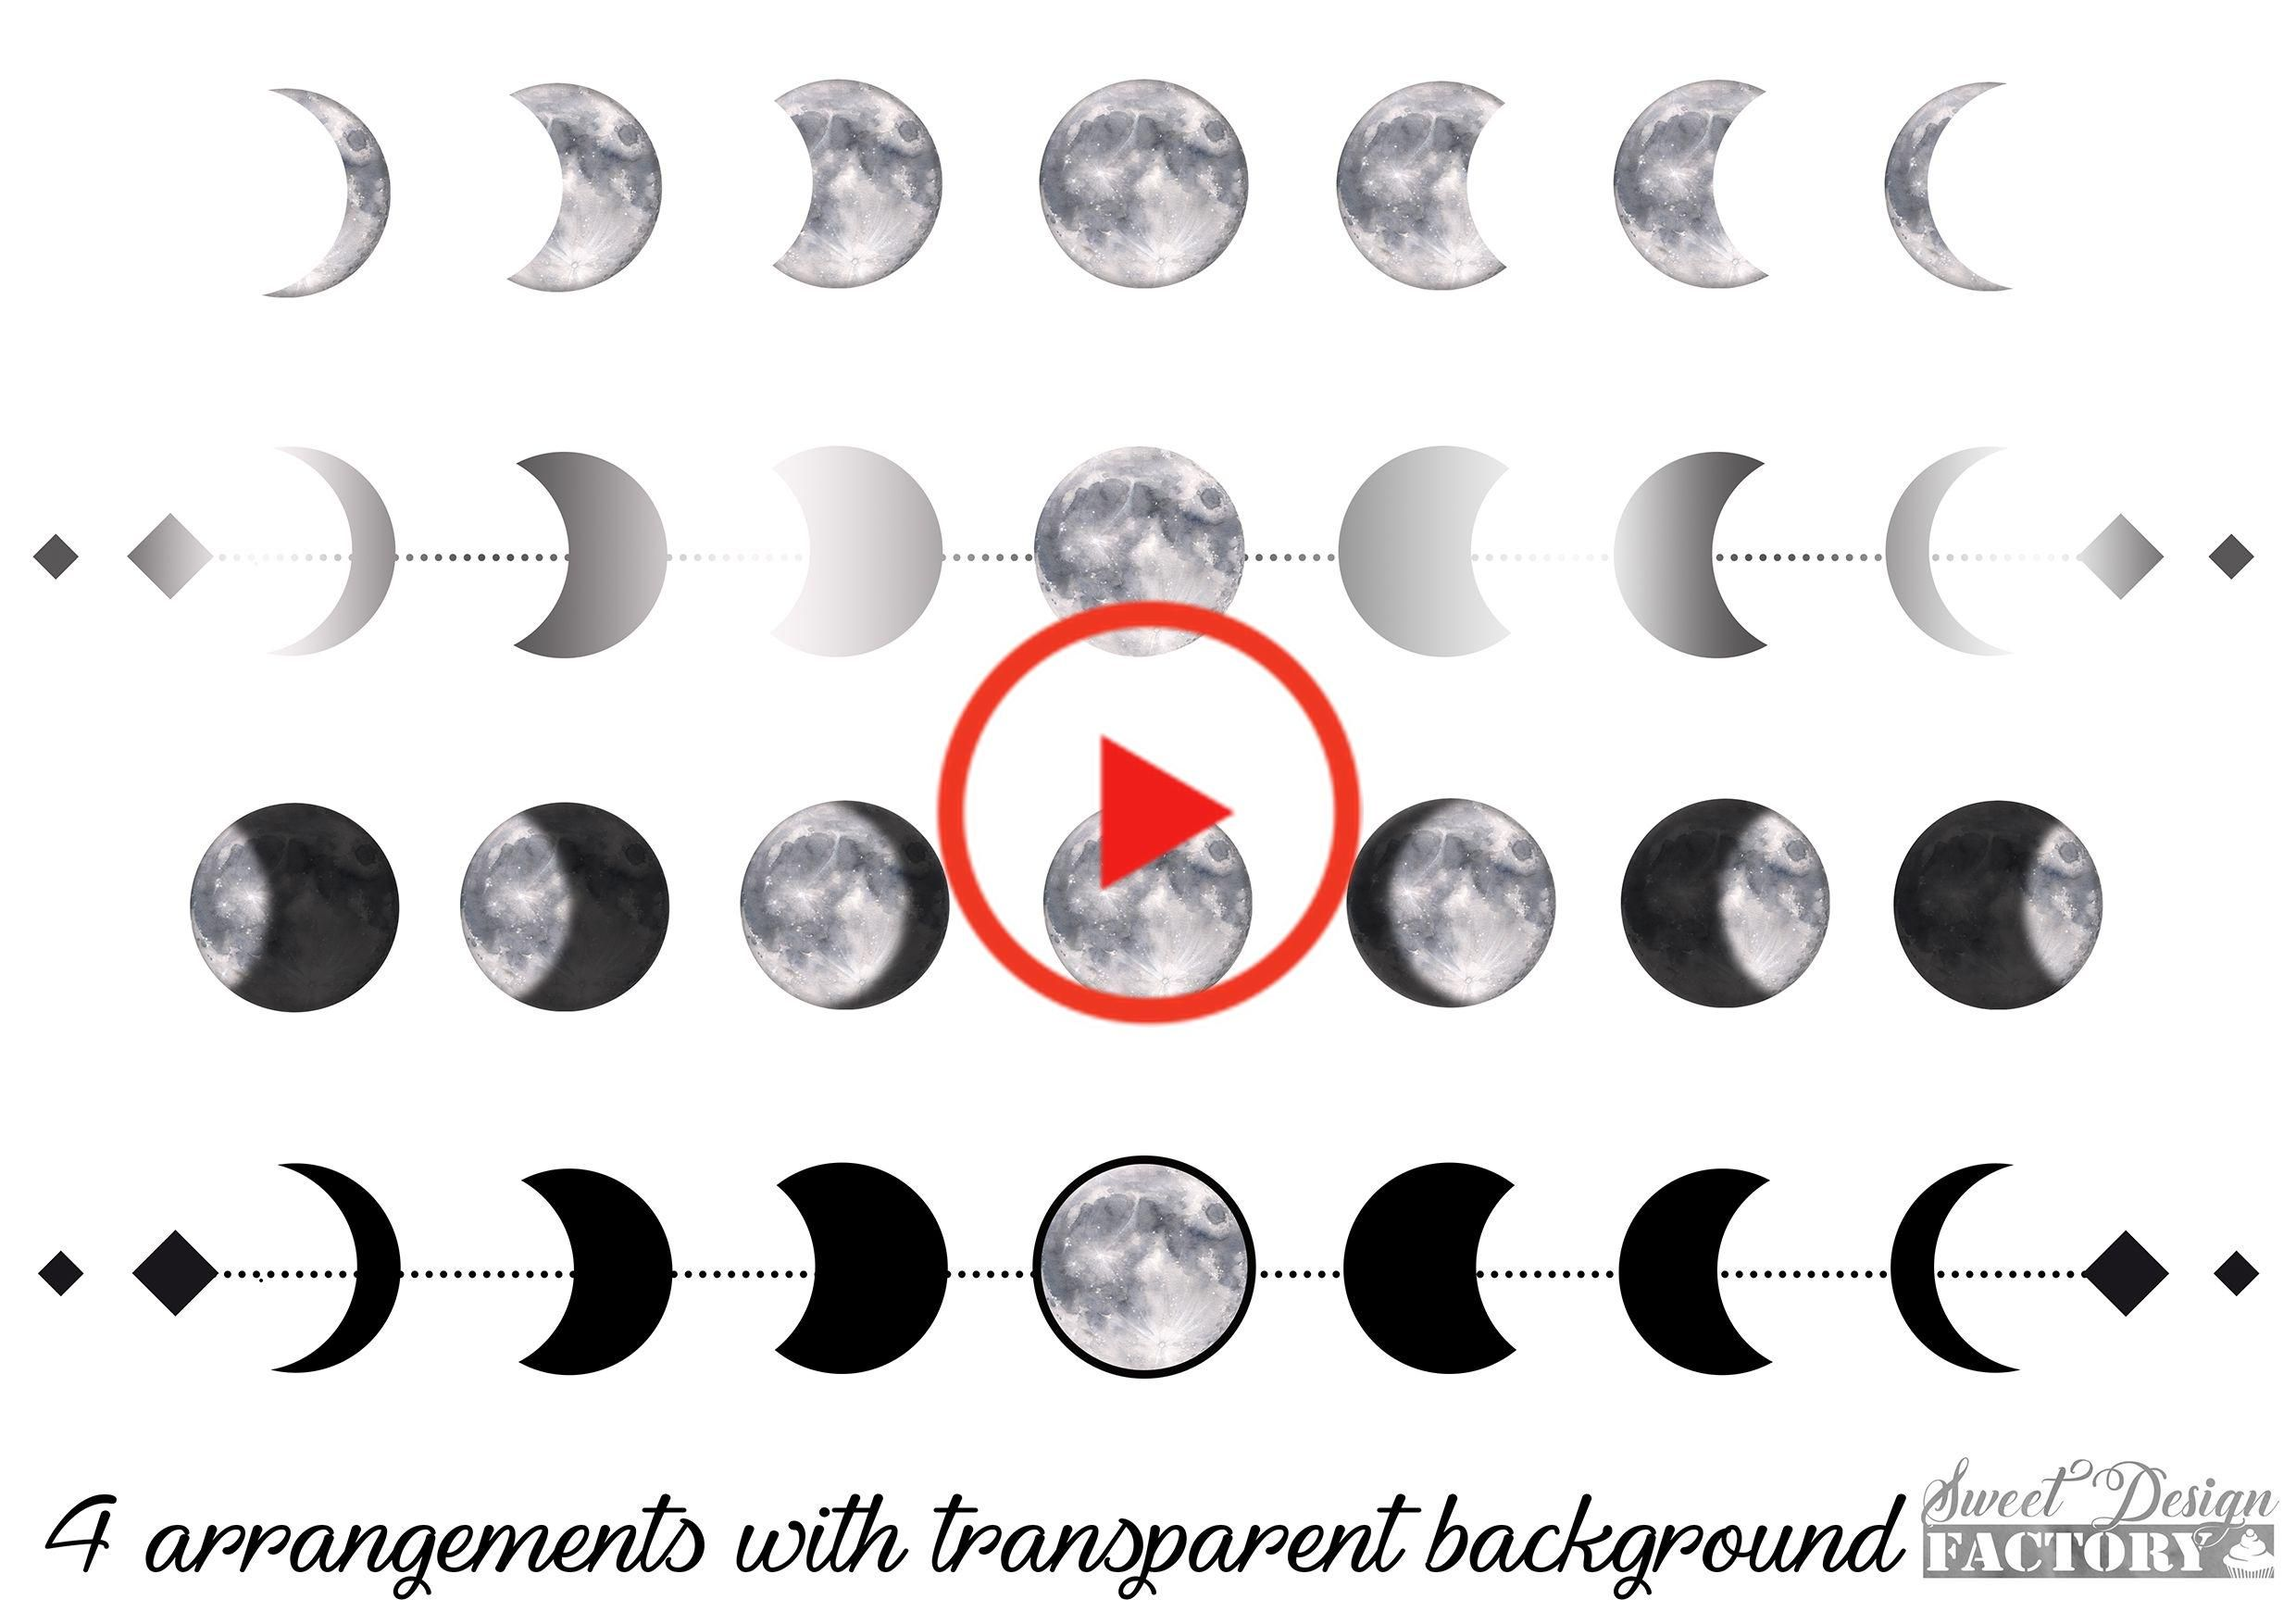 Clipart Reveler L Aquarelle Eclipse Cliparts Charge Eclipse Pleine Lune Clipart Mariage In 2020 Moon Phases Tattoo Watercolor Moon Moon Cycle Tattoo